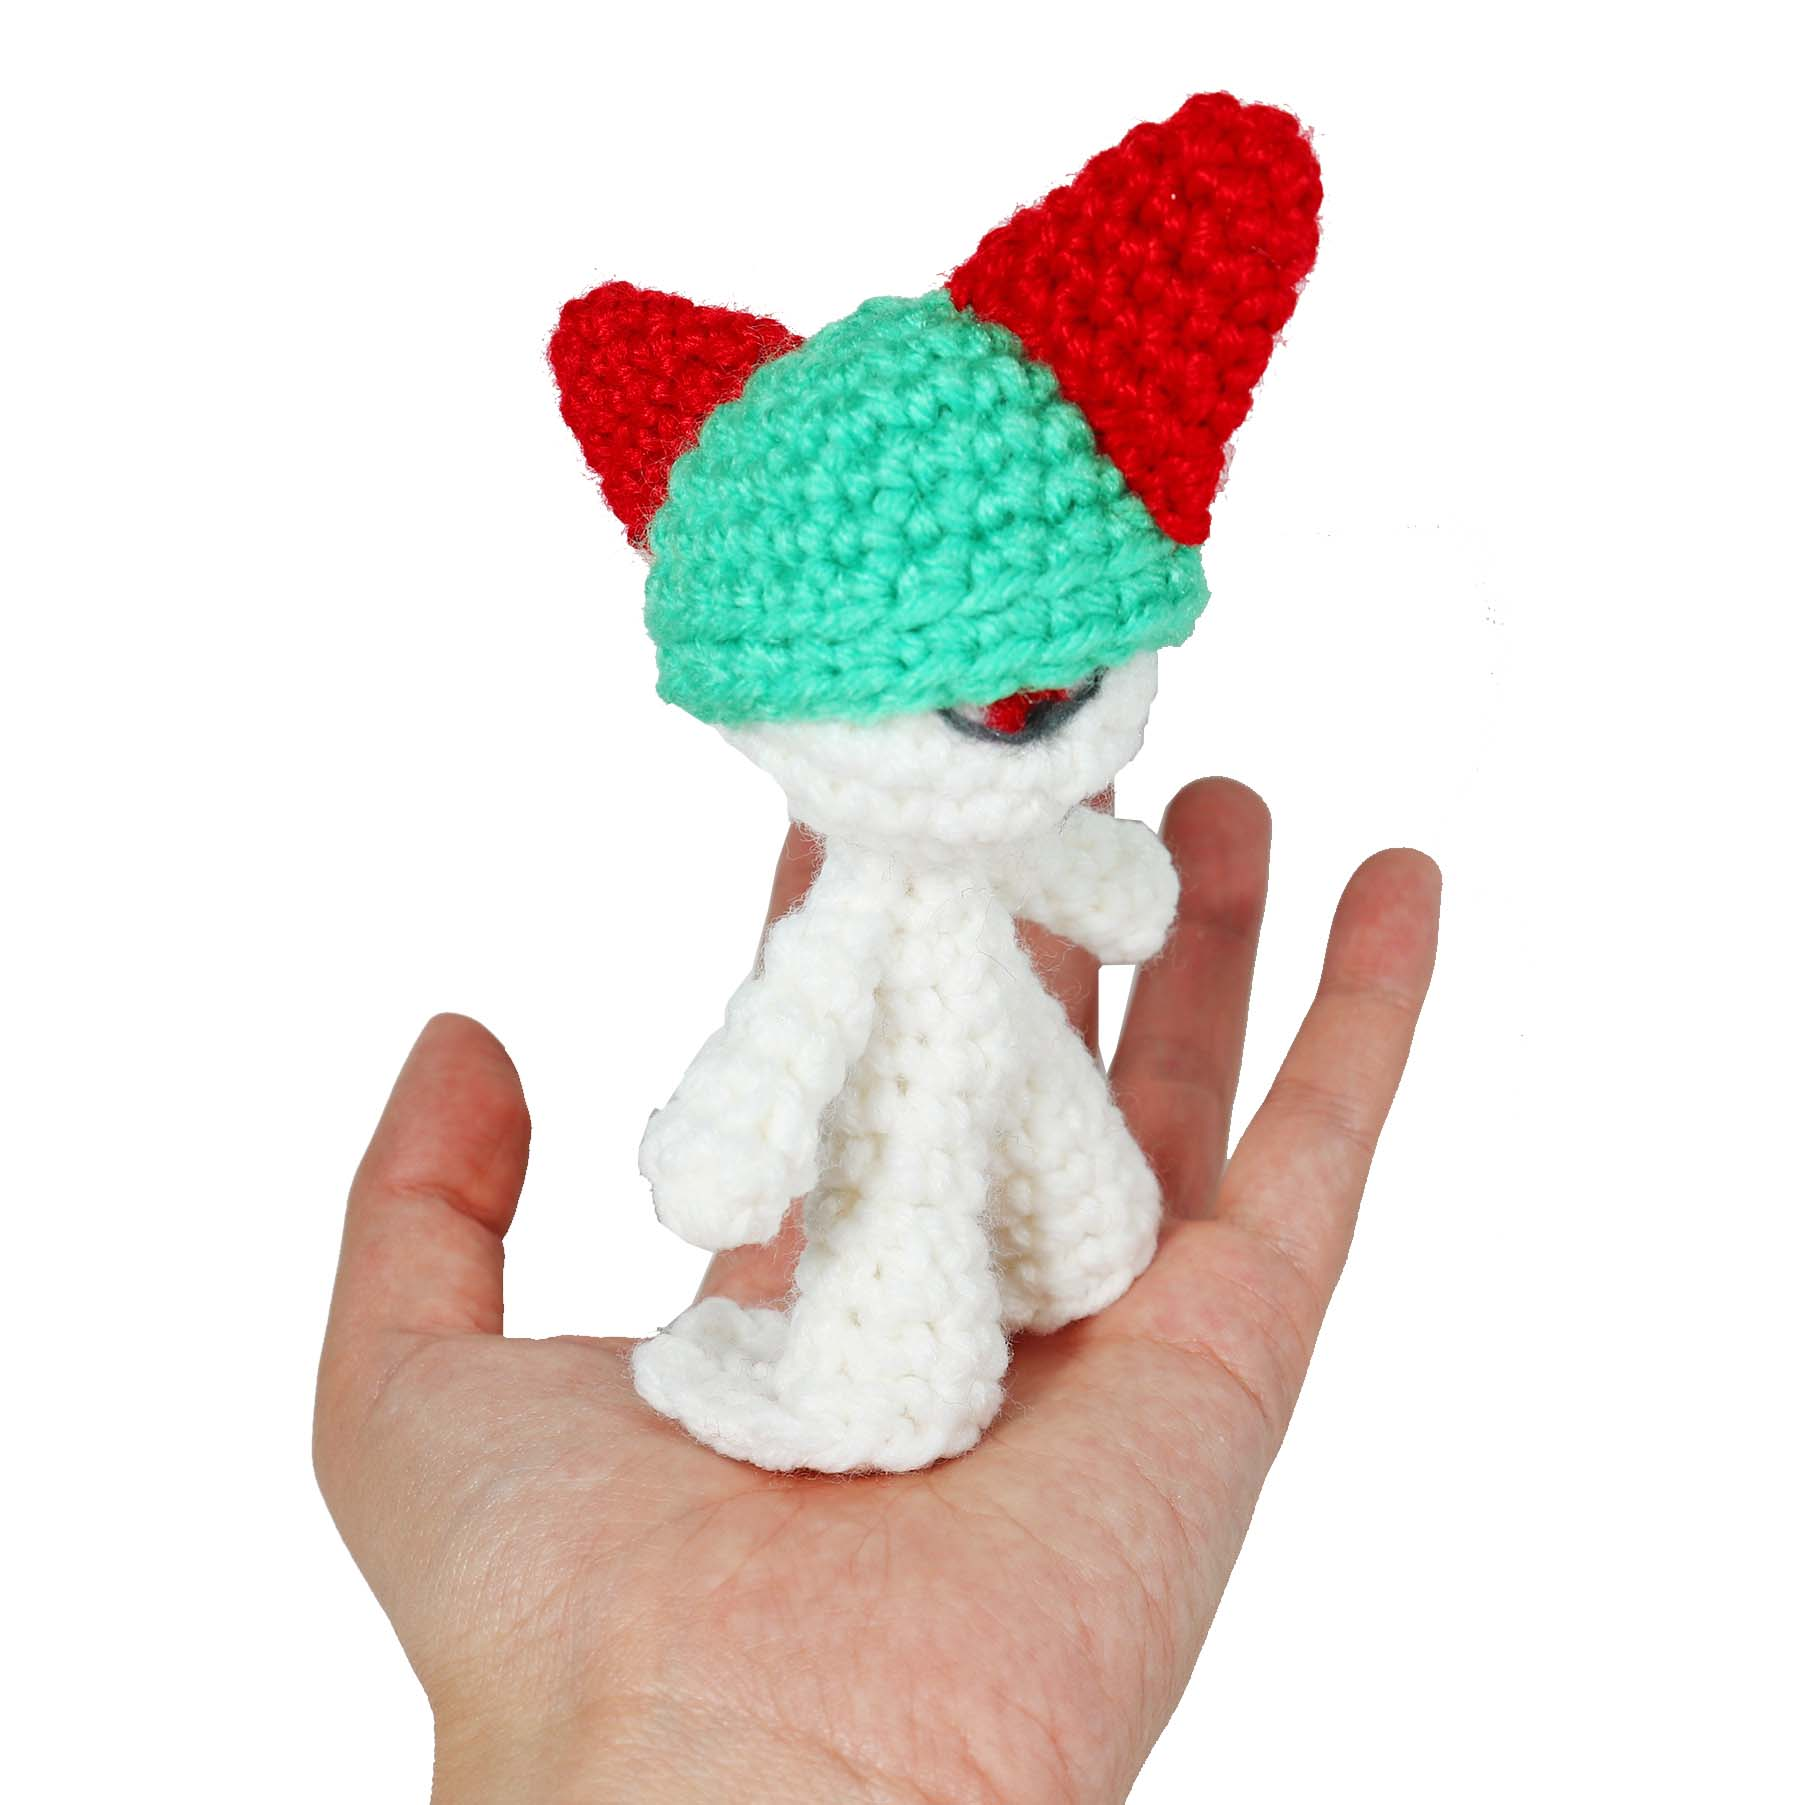 Crochet Ralts Free Pattern